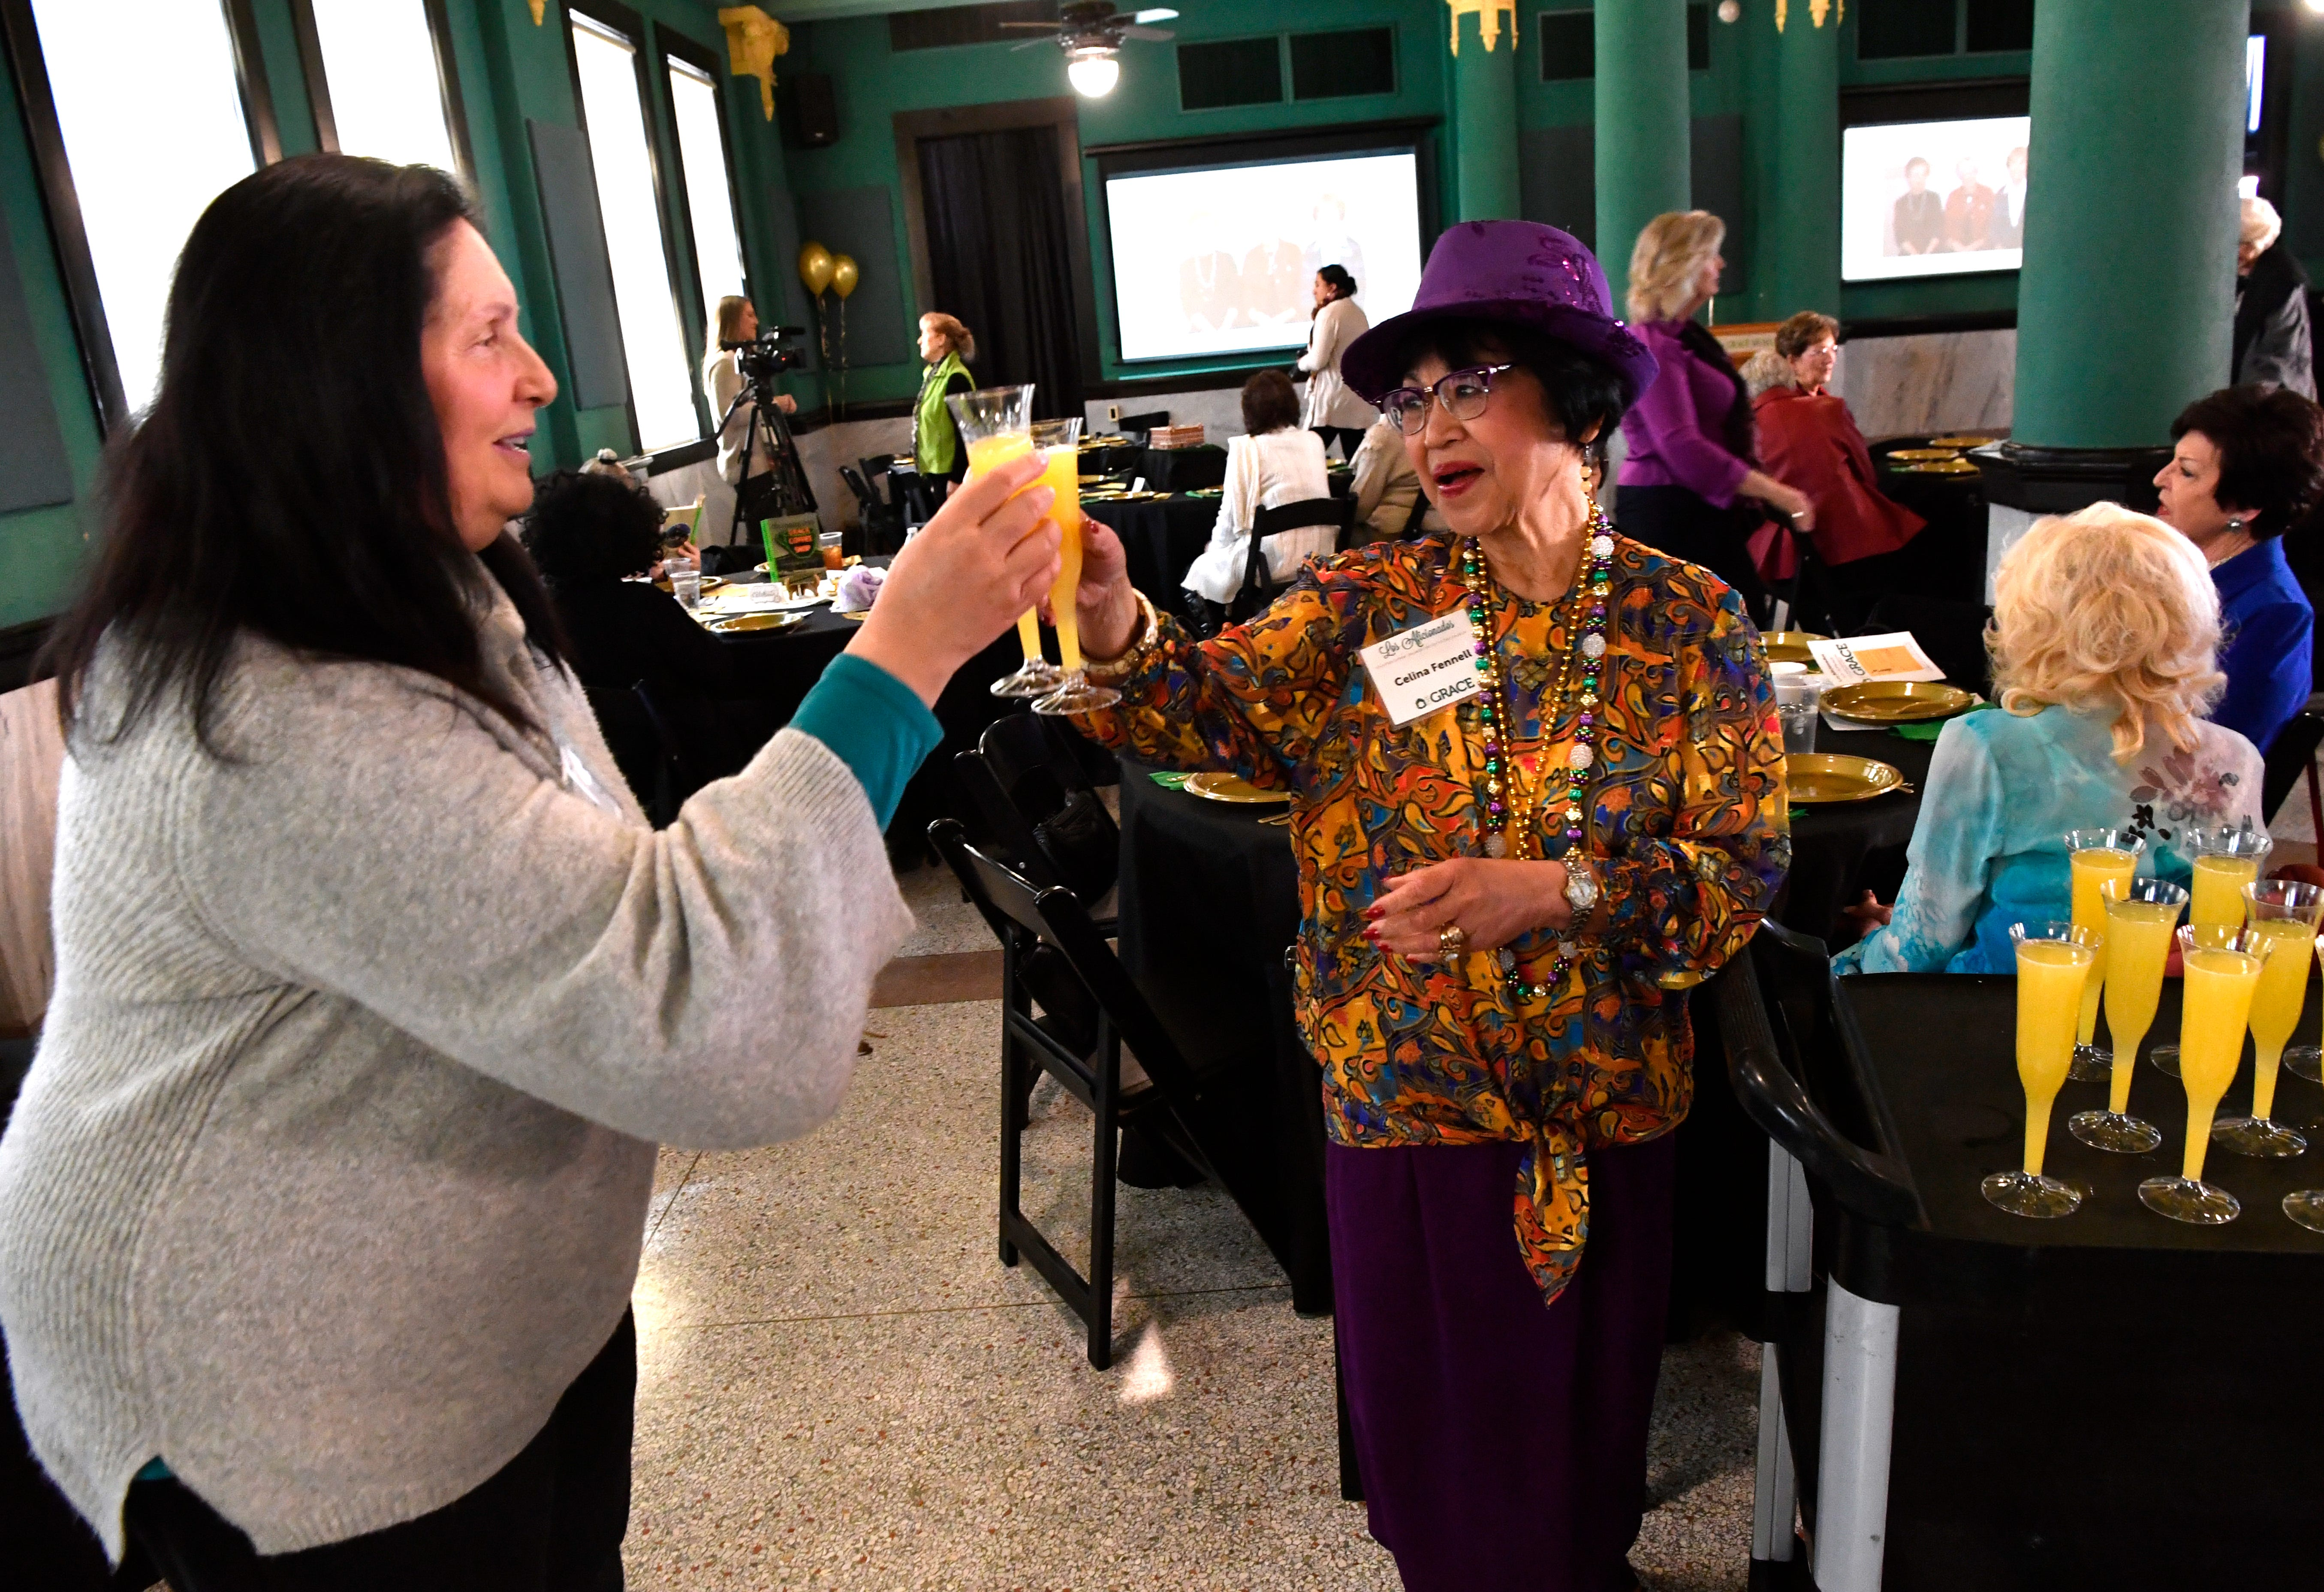 Ita Vaiser and Celina Fennell celebrate 50 years of Los Aficionados by toasting with mimosas at the group's monthly meeting March 5. The volunteer group has been promoting the arts in Abilene since 1969.